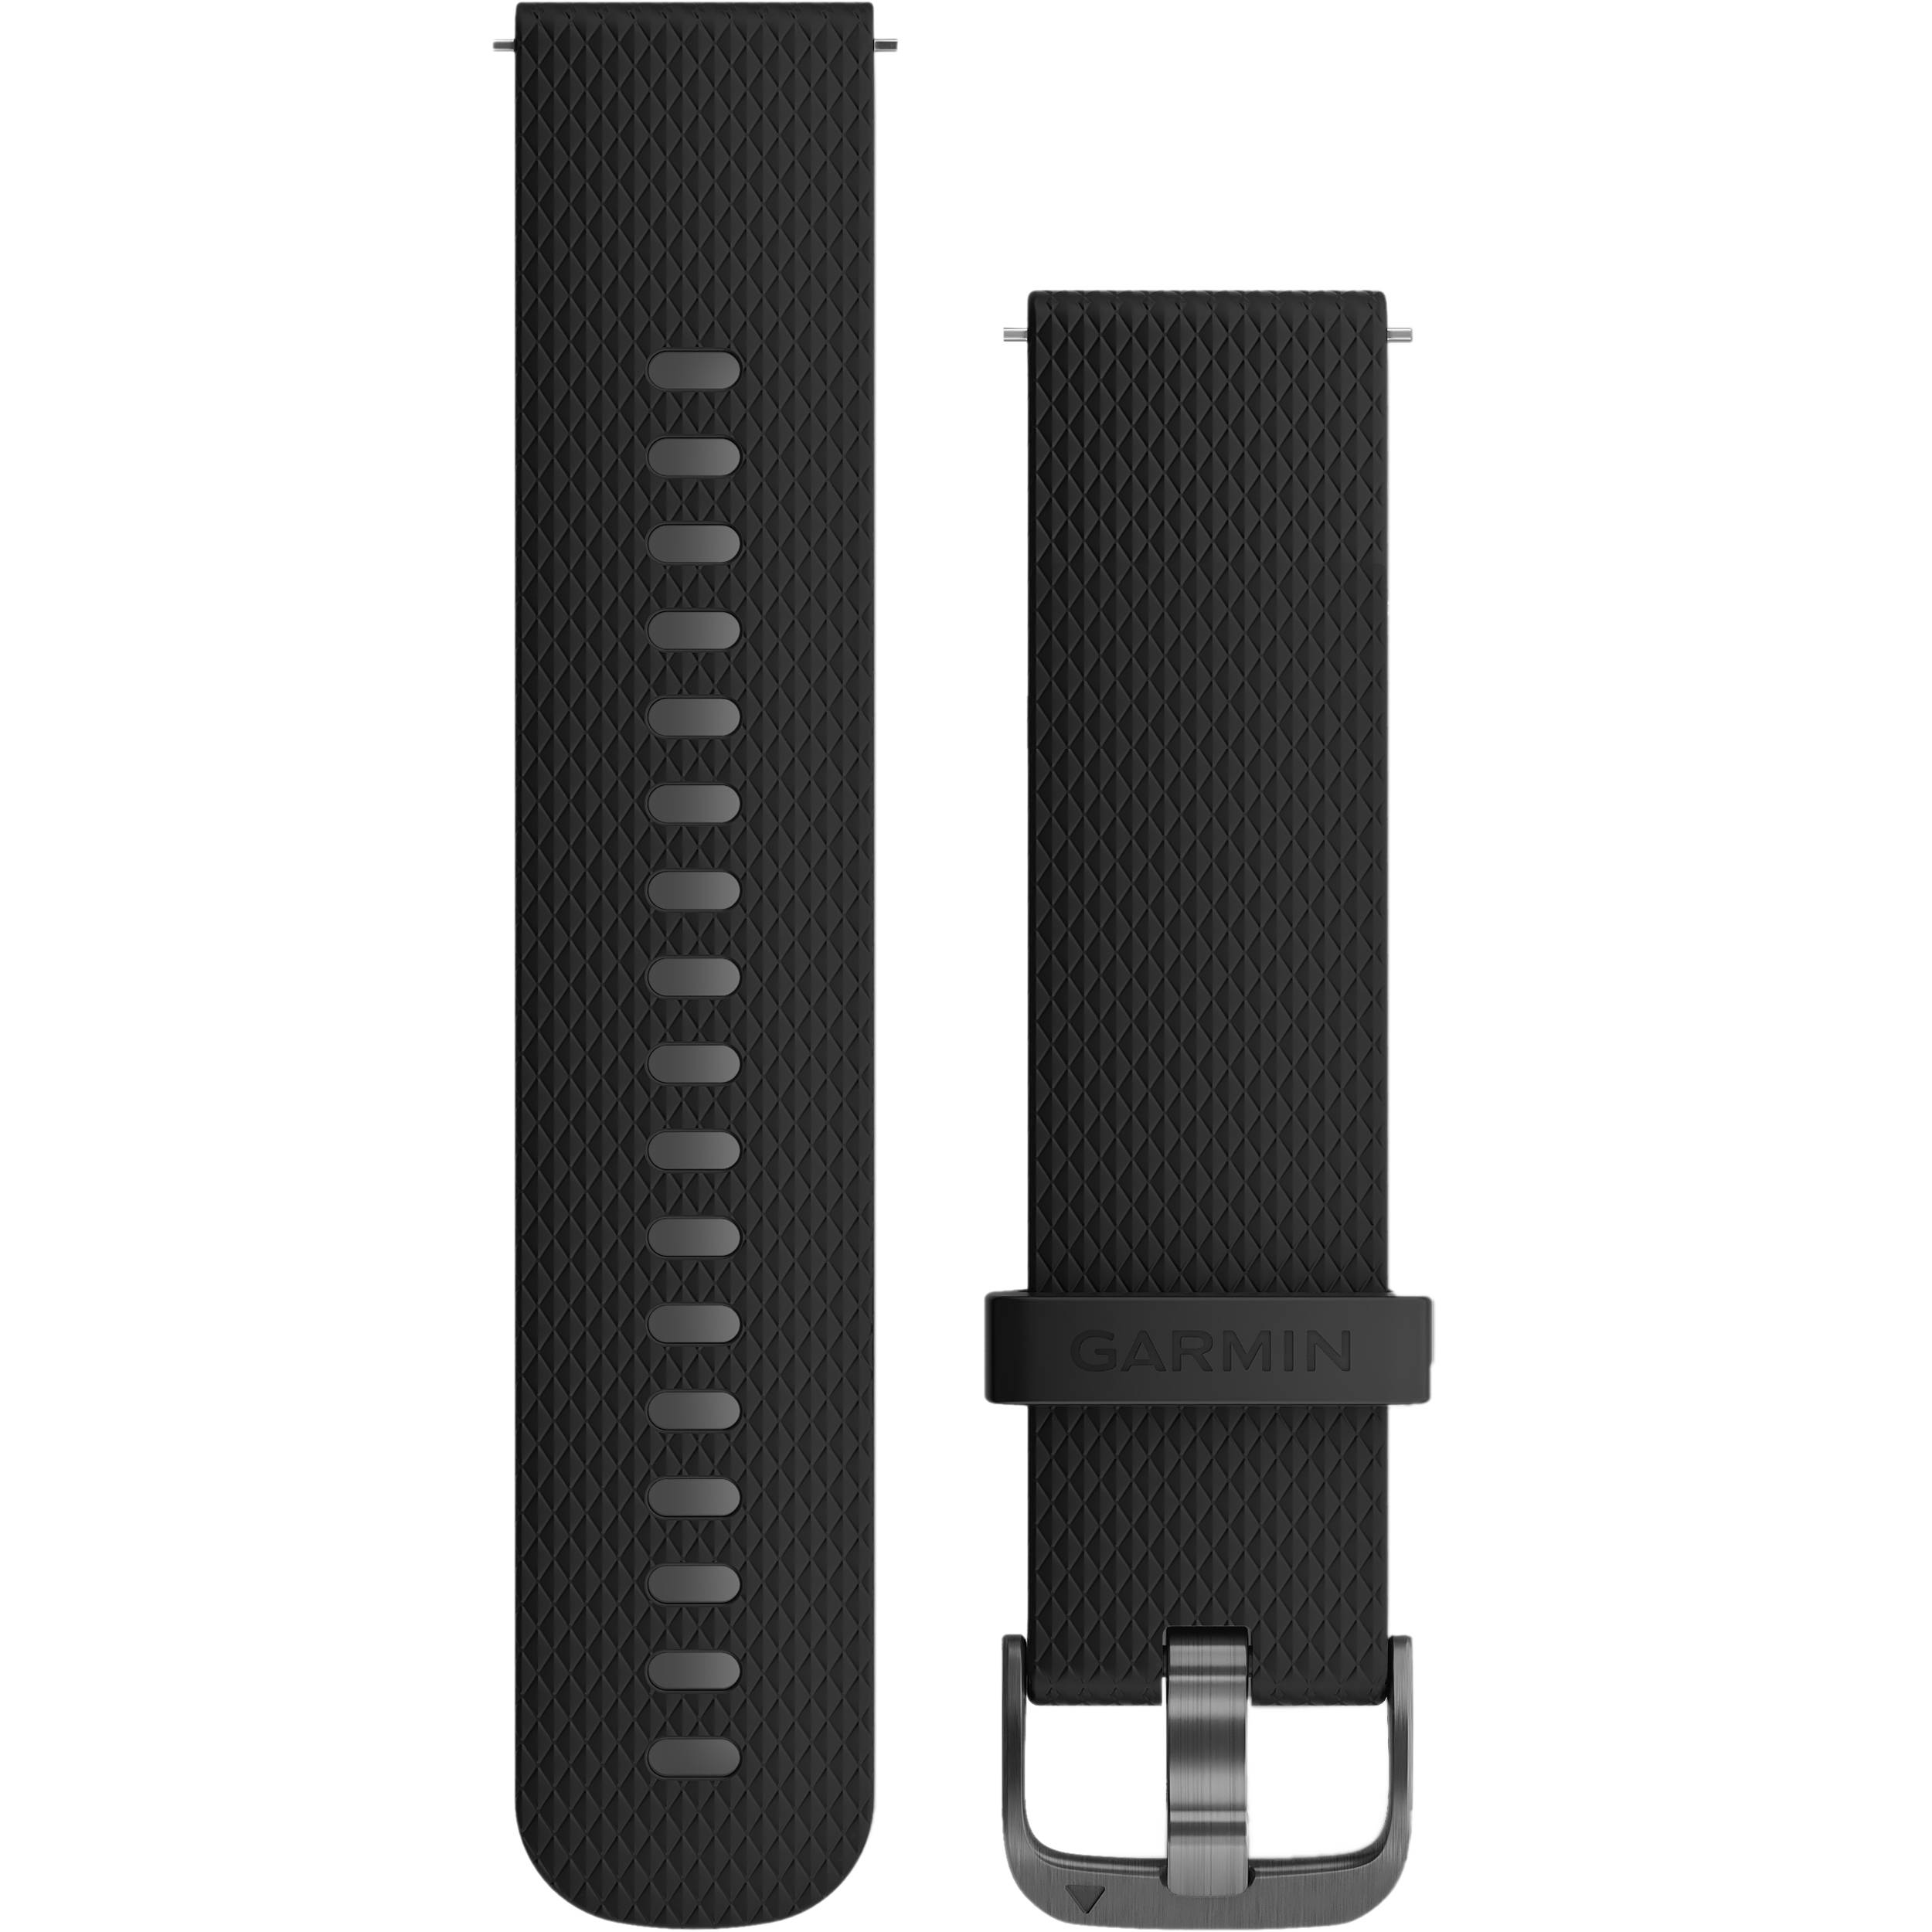 Garmin Quick Release Silicone Watch Band (20mm / Black / One Size)